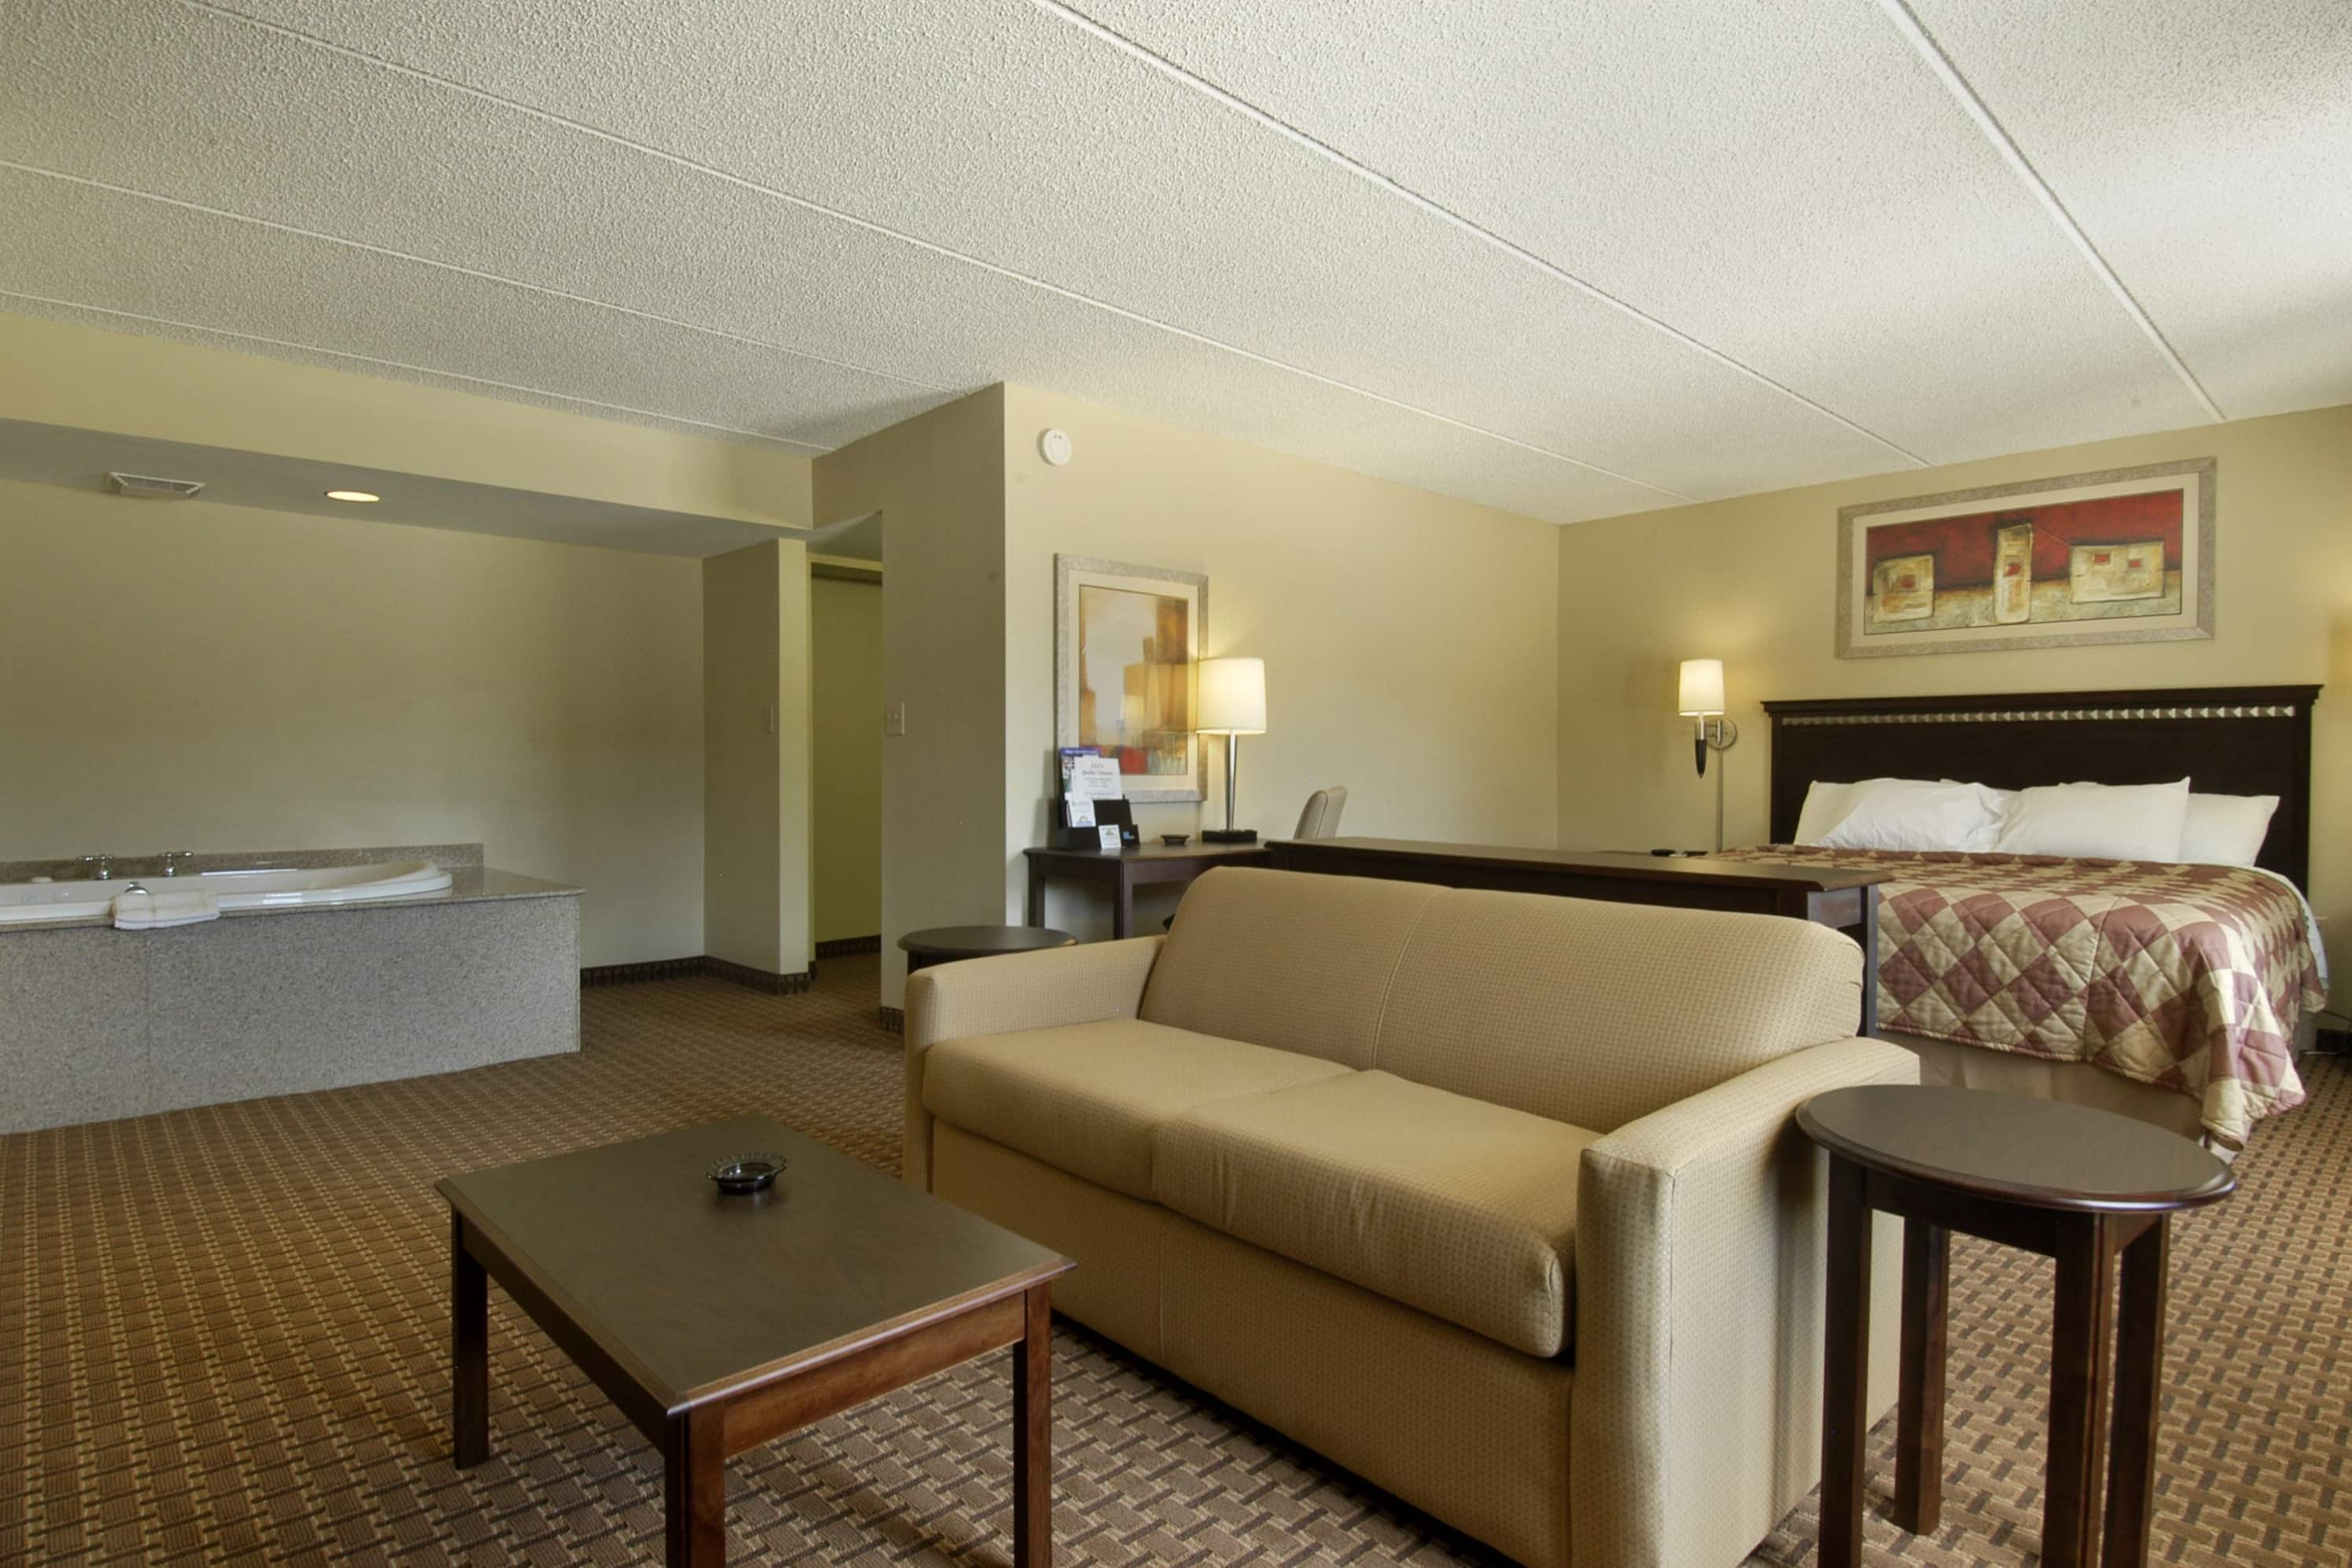 Days Inn Leeds suite in Leeds, Alabama